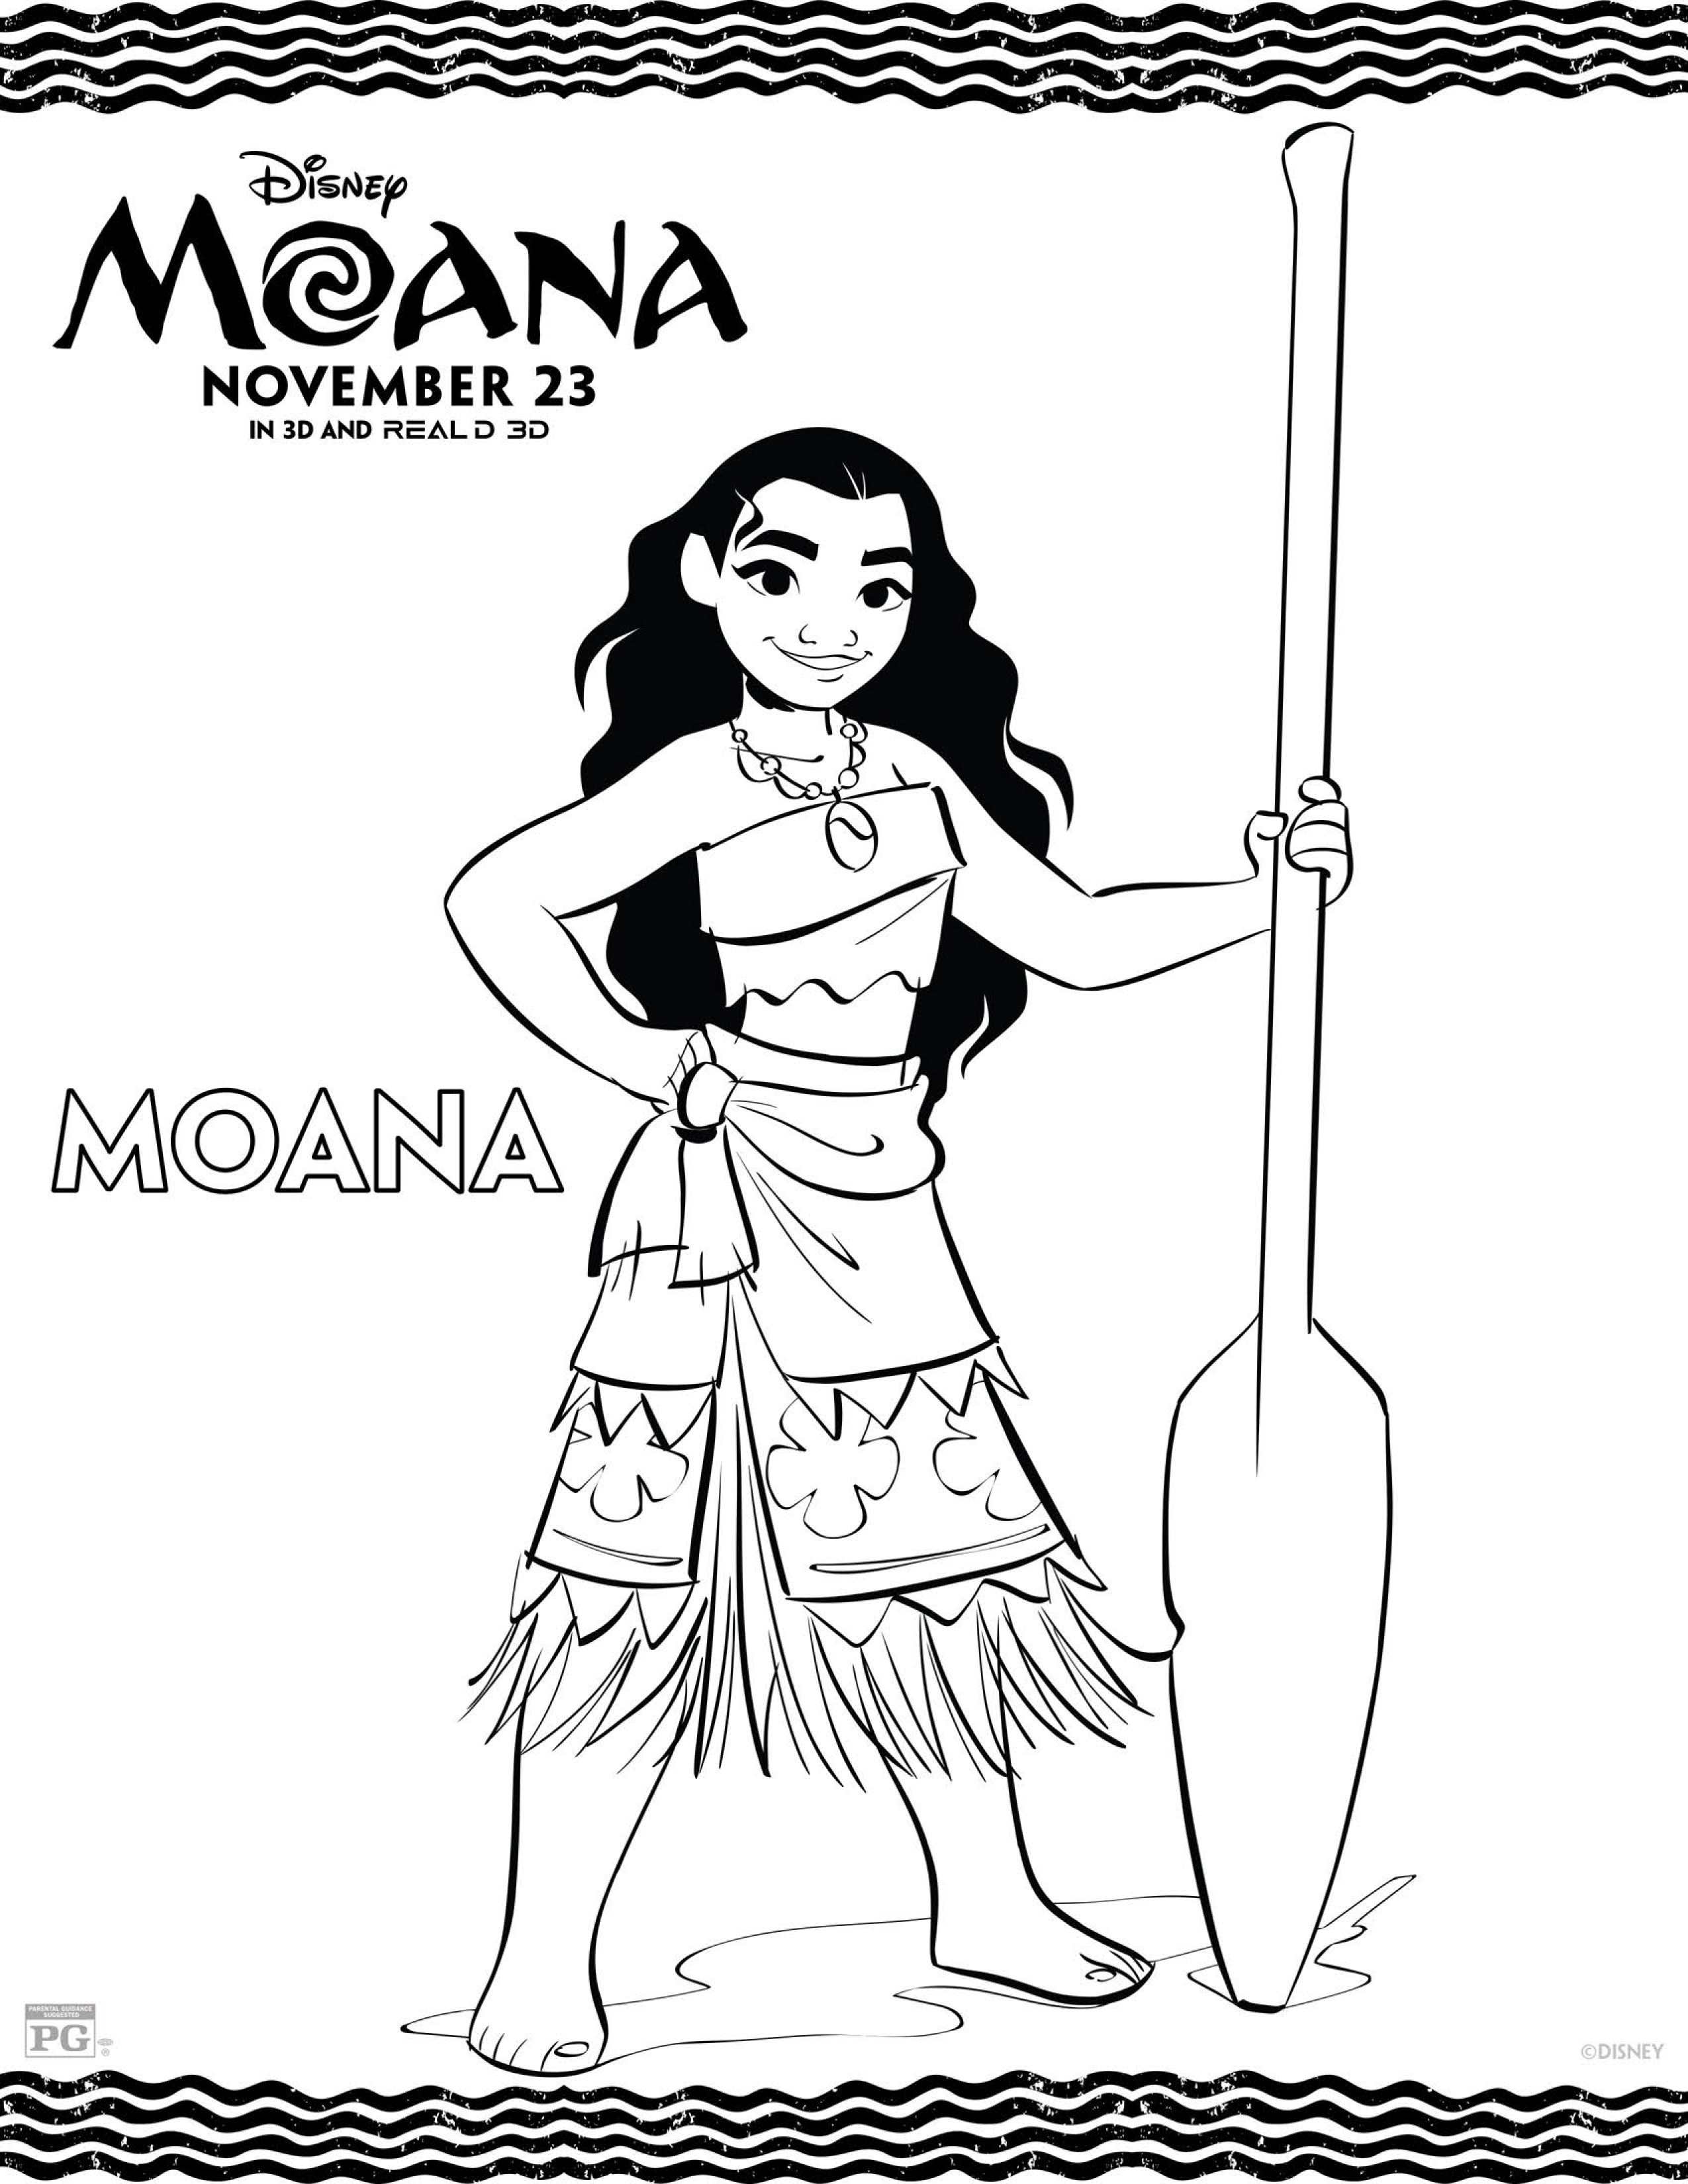 photo regarding Moana Coloring Pages Printable identify Moana Coloring Webpages - Least complicated Coloring Web pages For Children